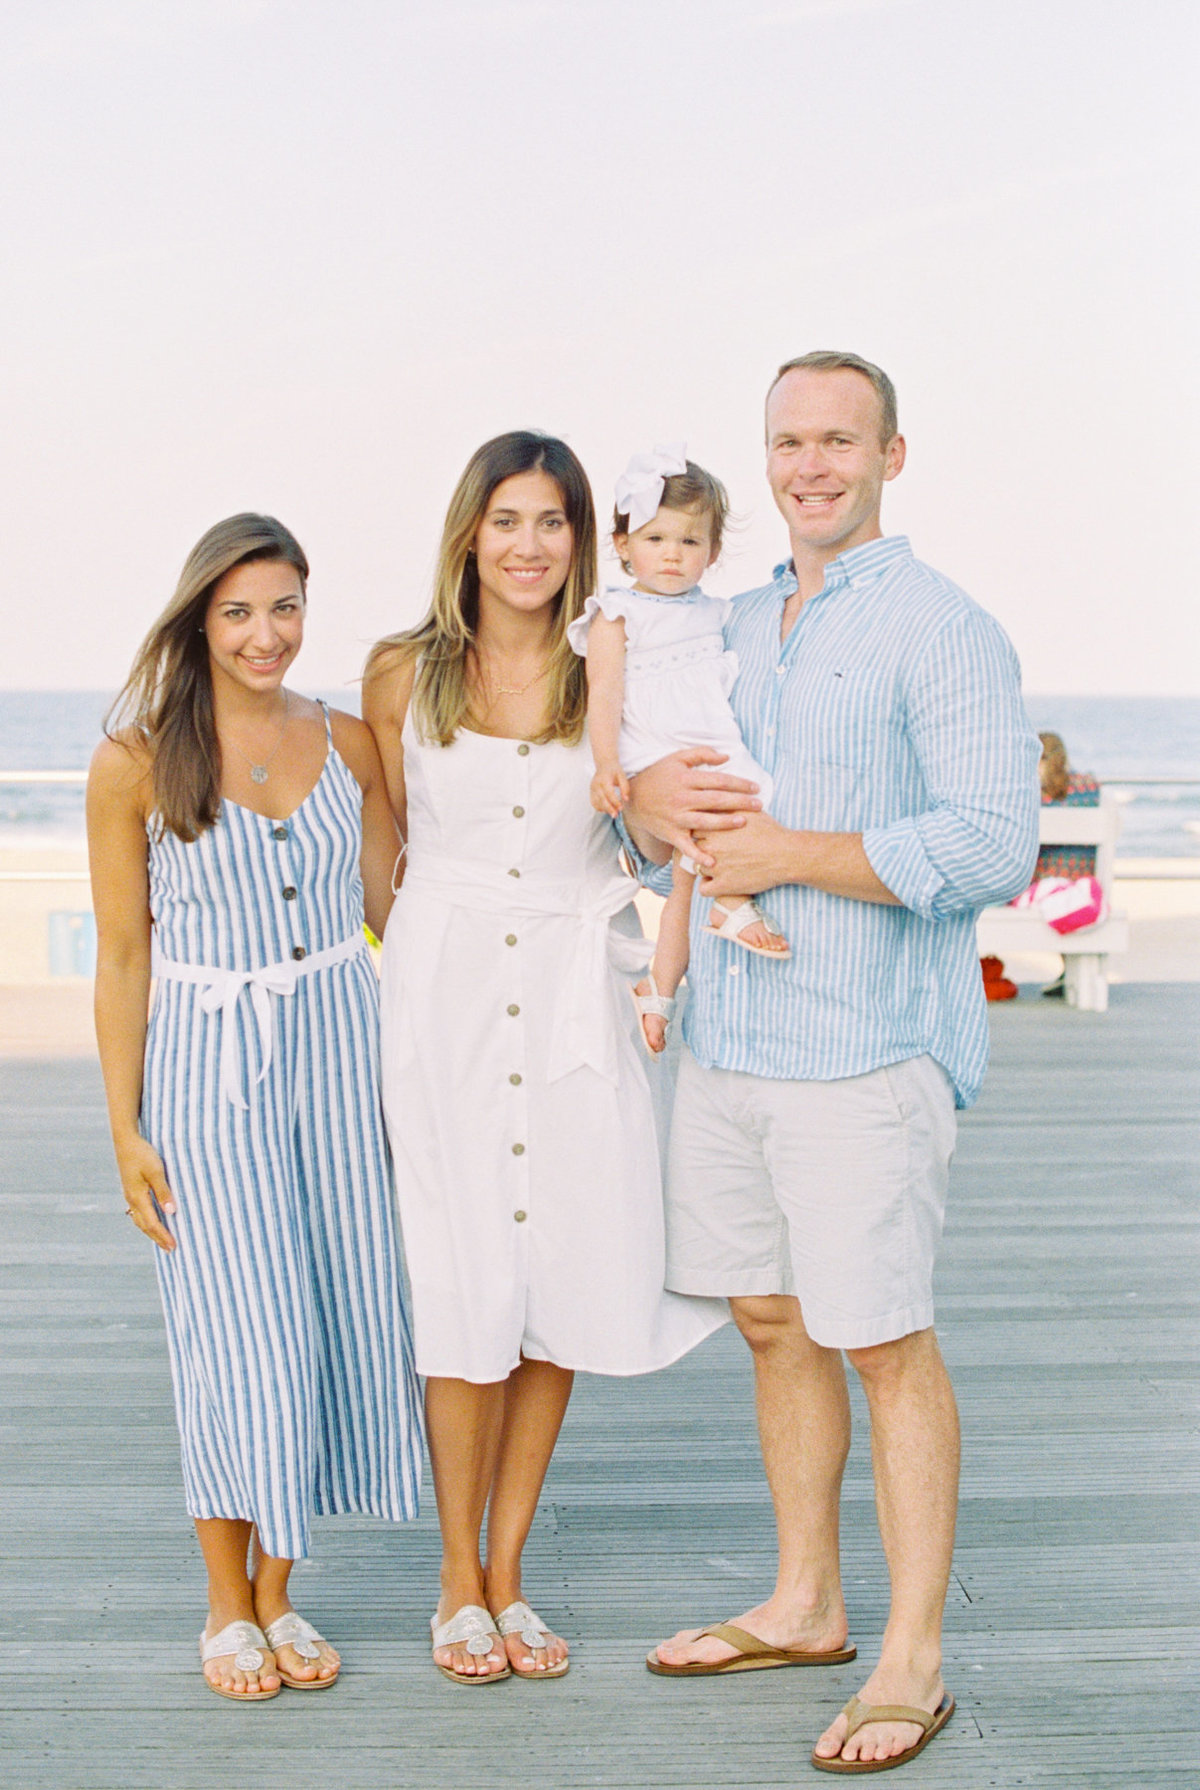 Michelle Behre Photography NJ Fine Art Photographer Seaside Family Lifestyle Family Portrait Session in Avon-by-the-Sea-115